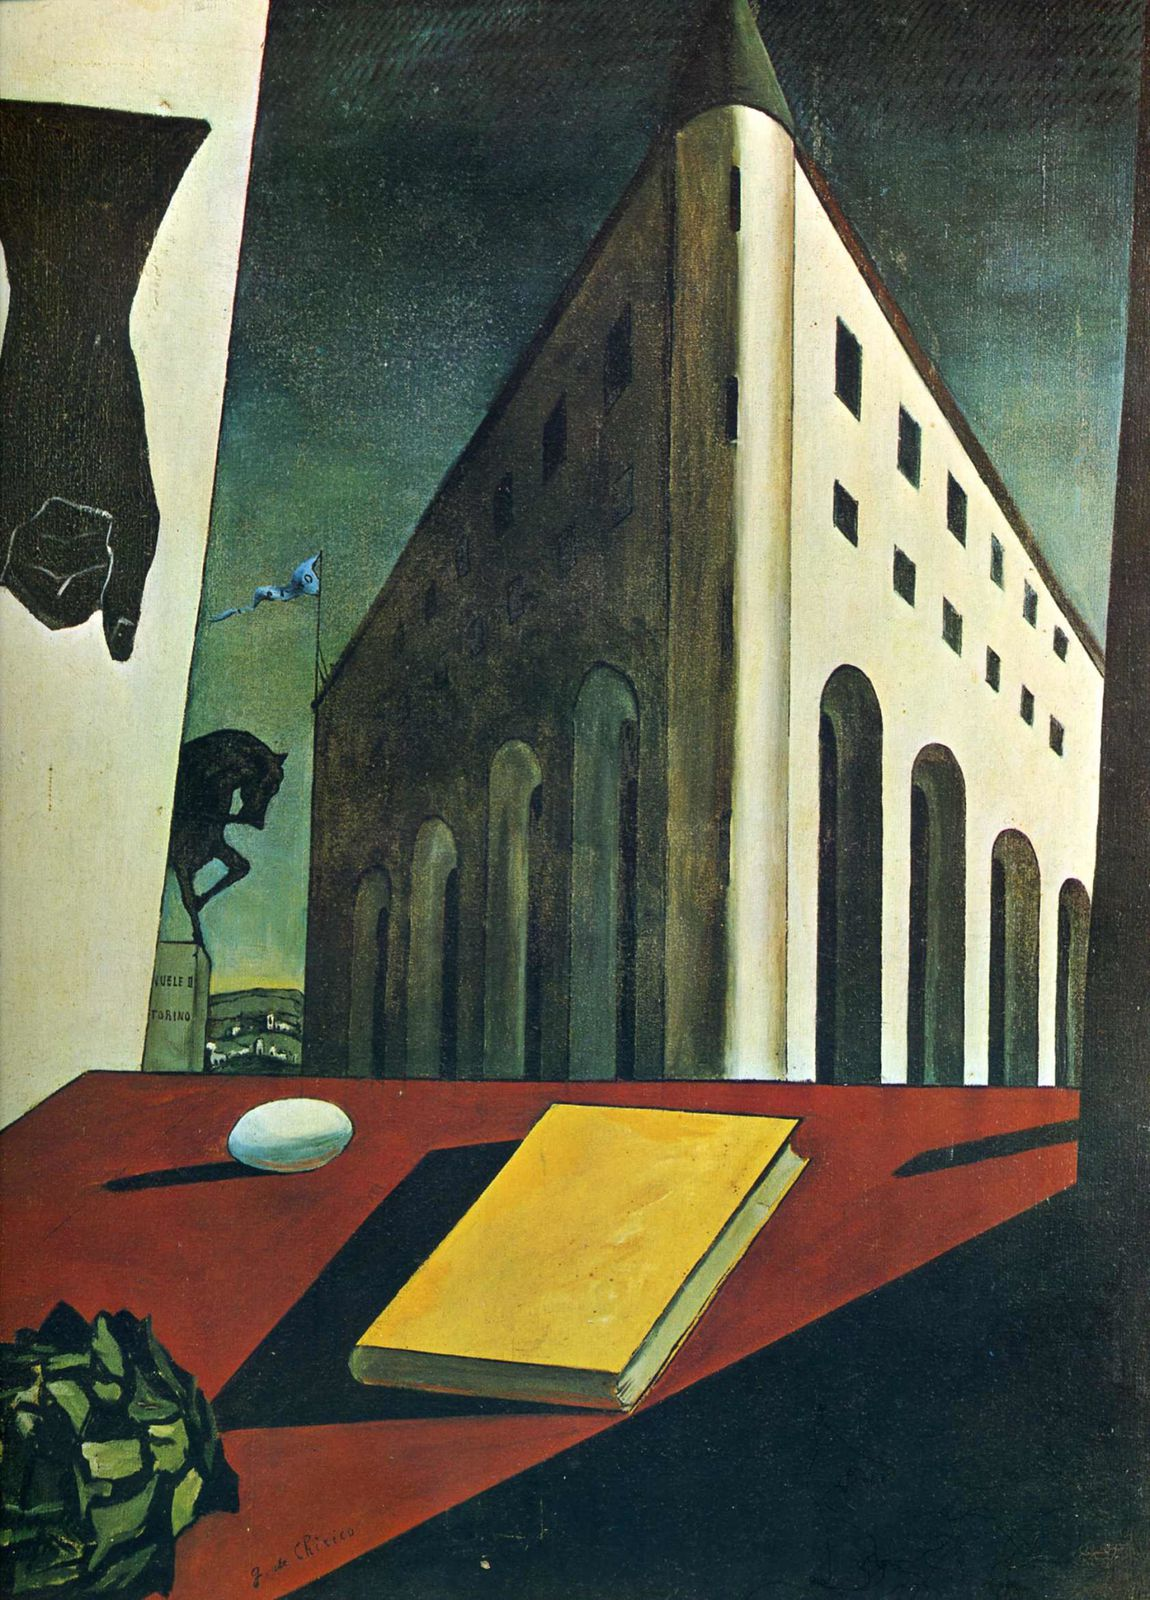 Giorgio de Chirico, Turin Spring, 1914, Collection privée.